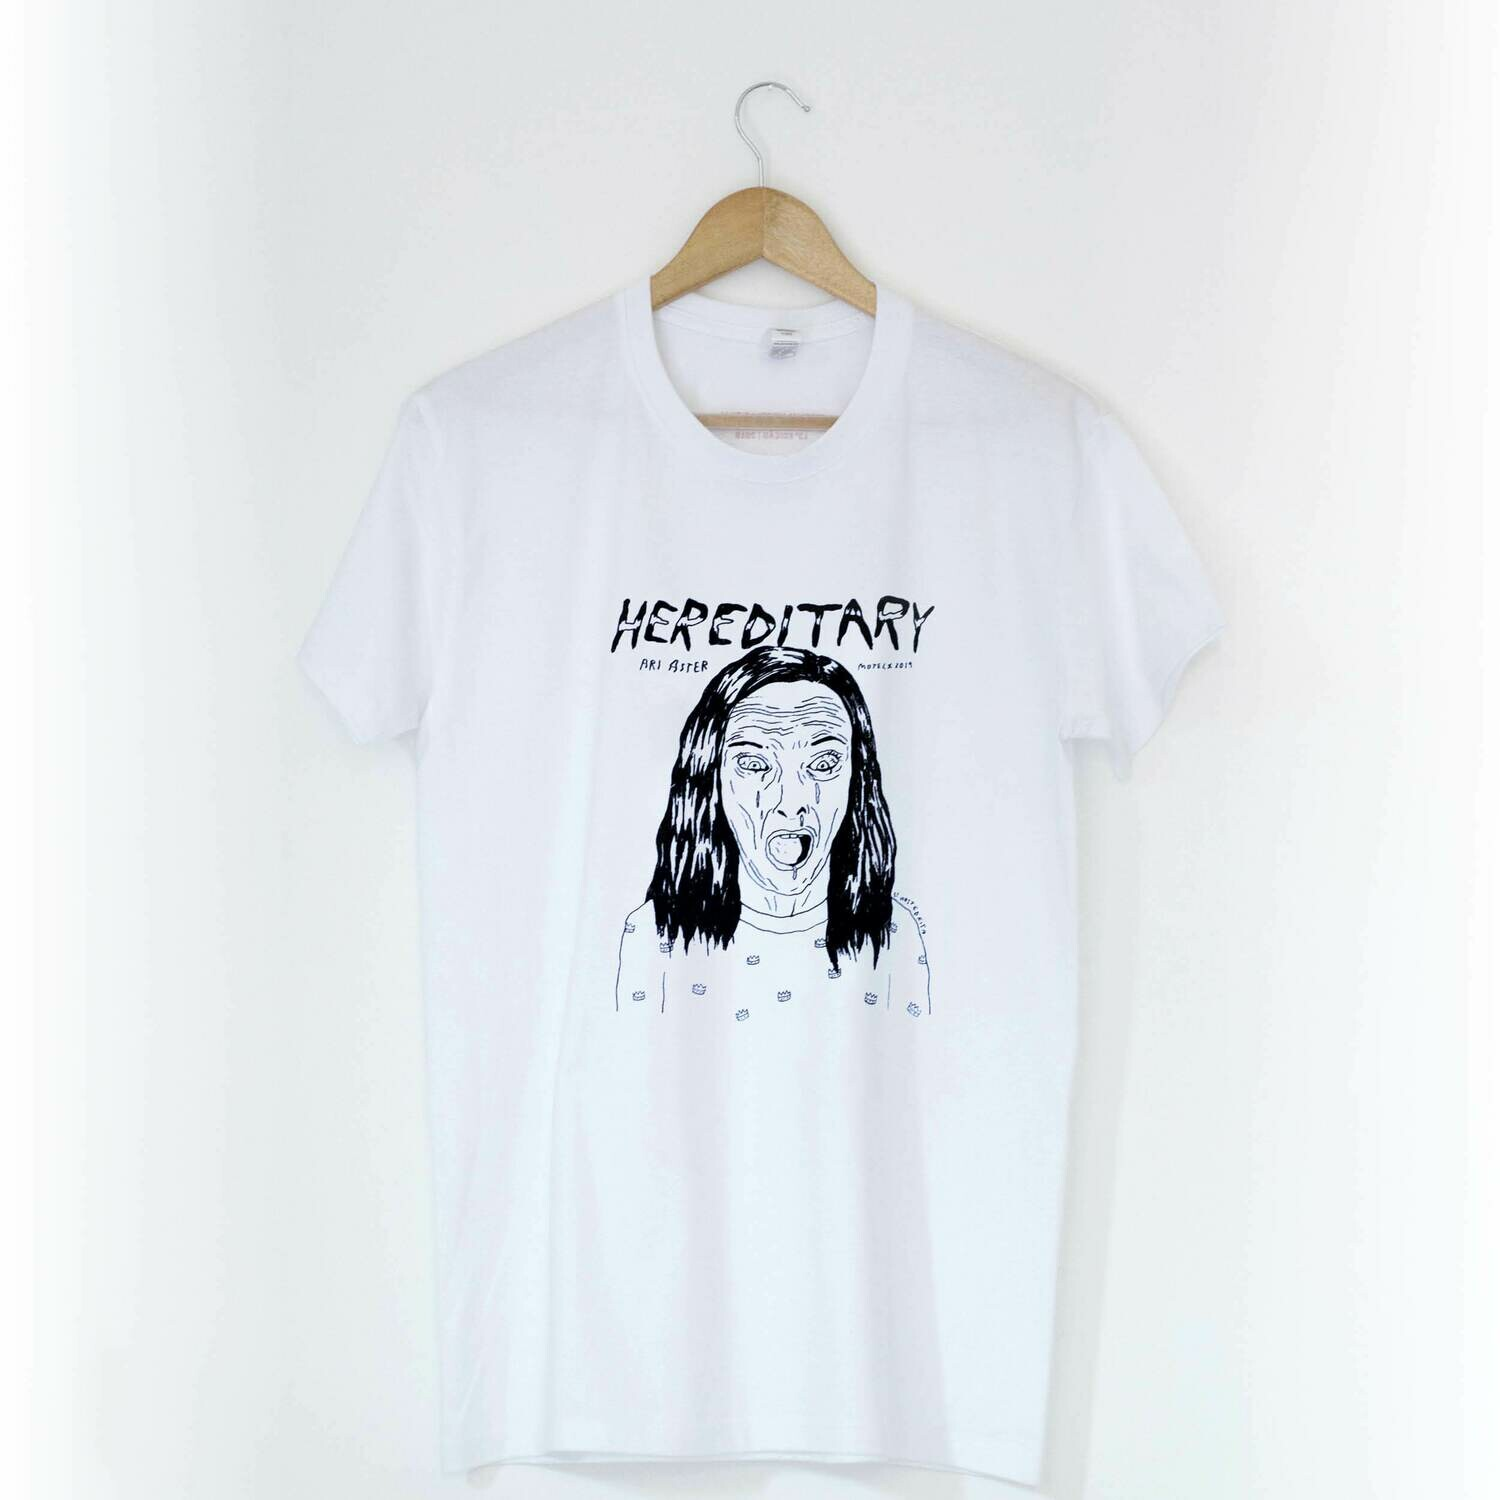 MOTELX 2019 Special Edition T-Shirt / Hereditary by Wasted Rita